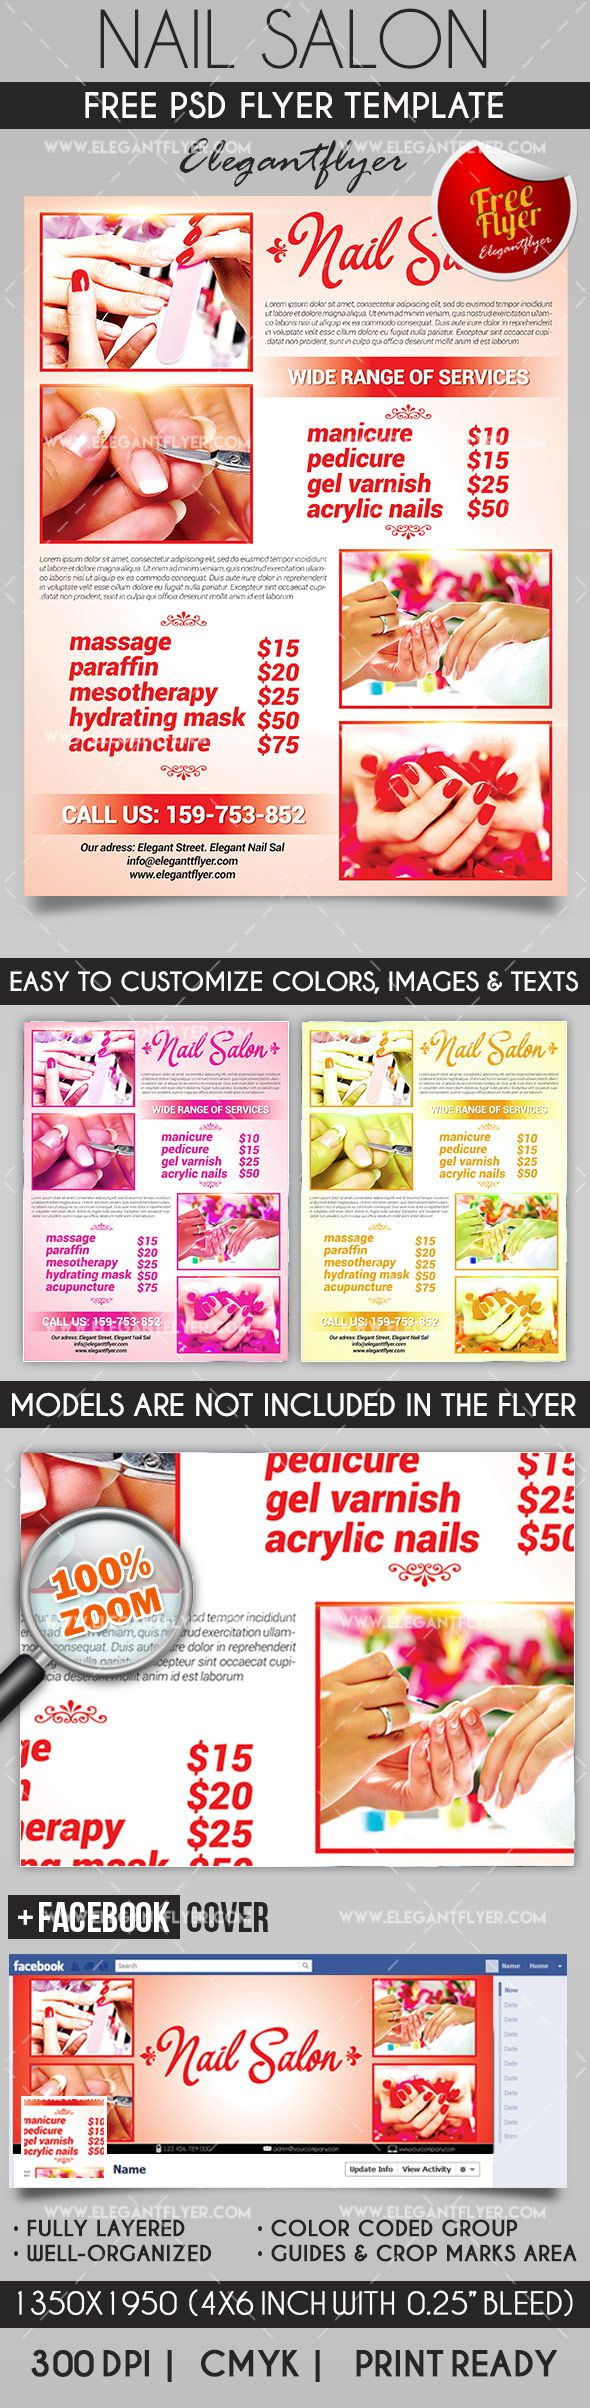 1000 images about psd flyer design 2016 mardi get this amazing template you can use all of our premium flyer templates psd event flyer templates many business brochures and awesome cd